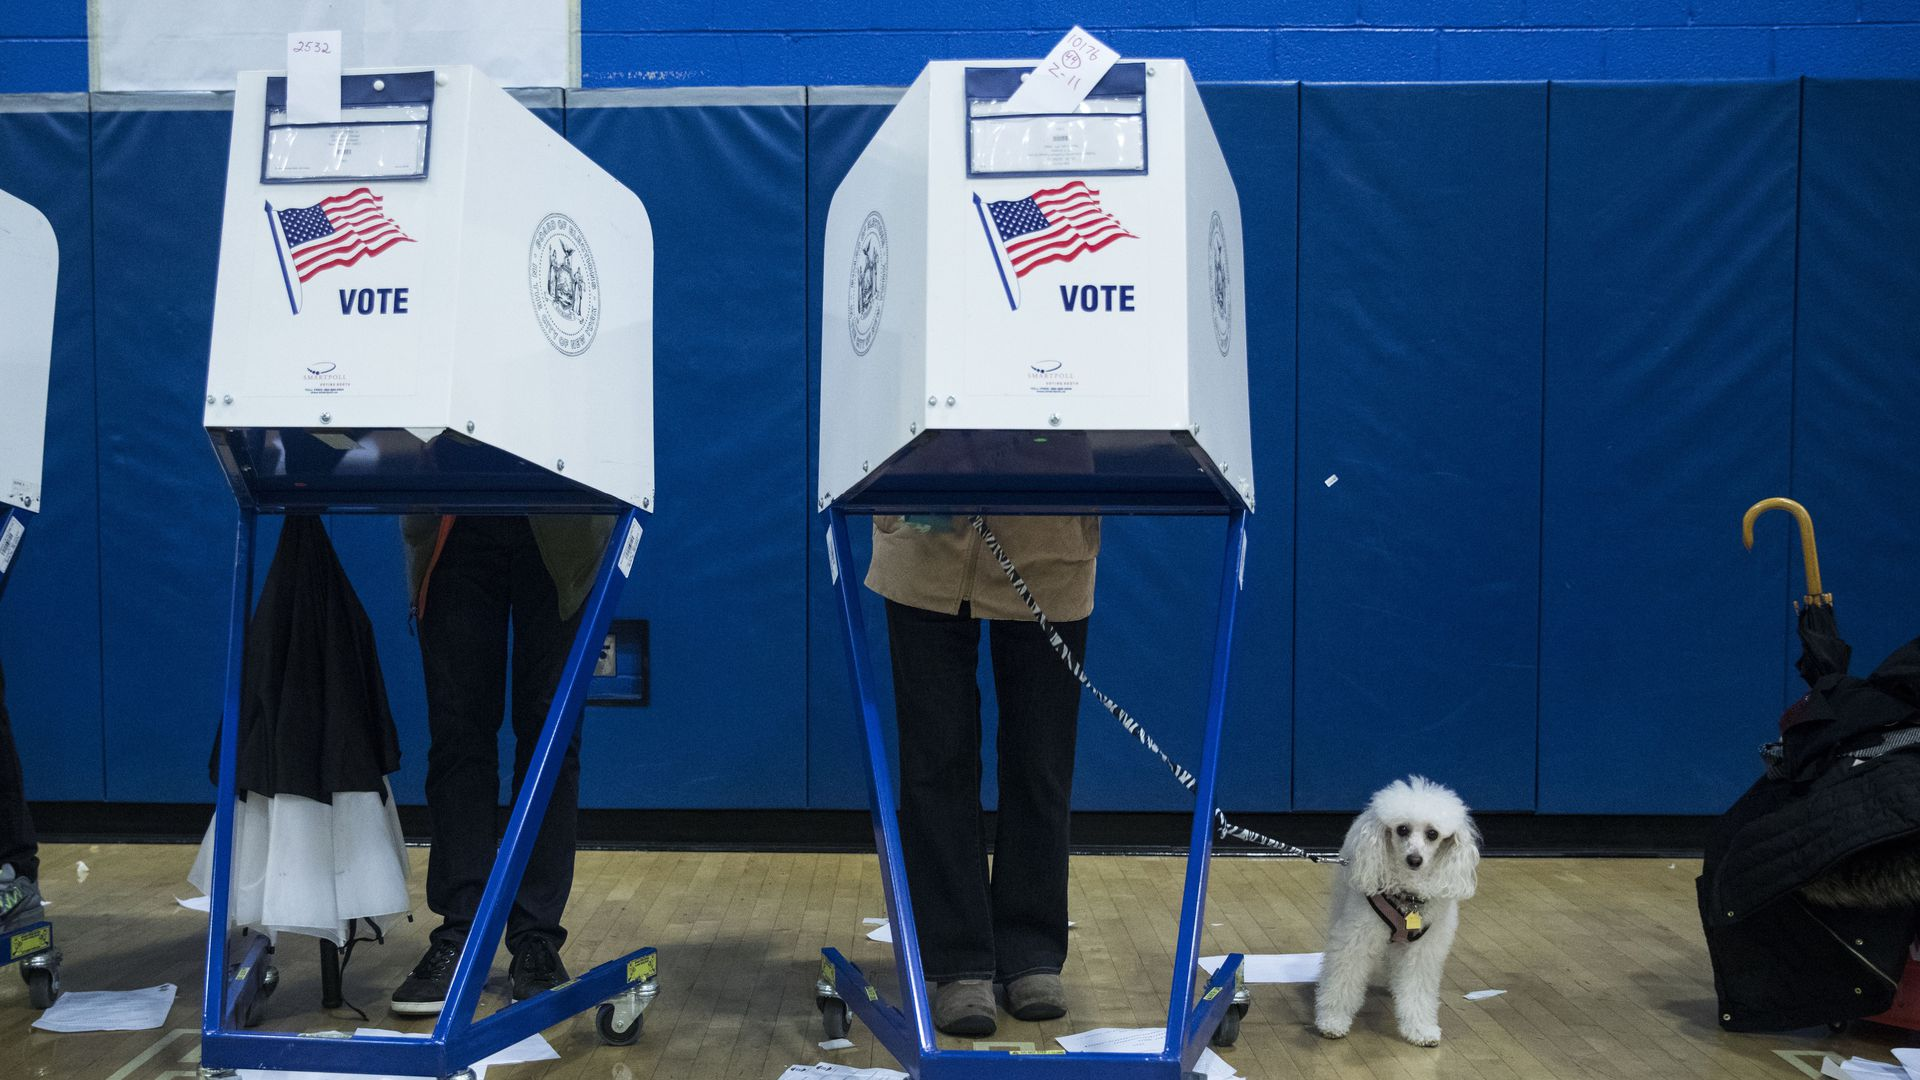 Two voting booths with people voting in them. One voter has a small, white, fluffy dog on a leash.